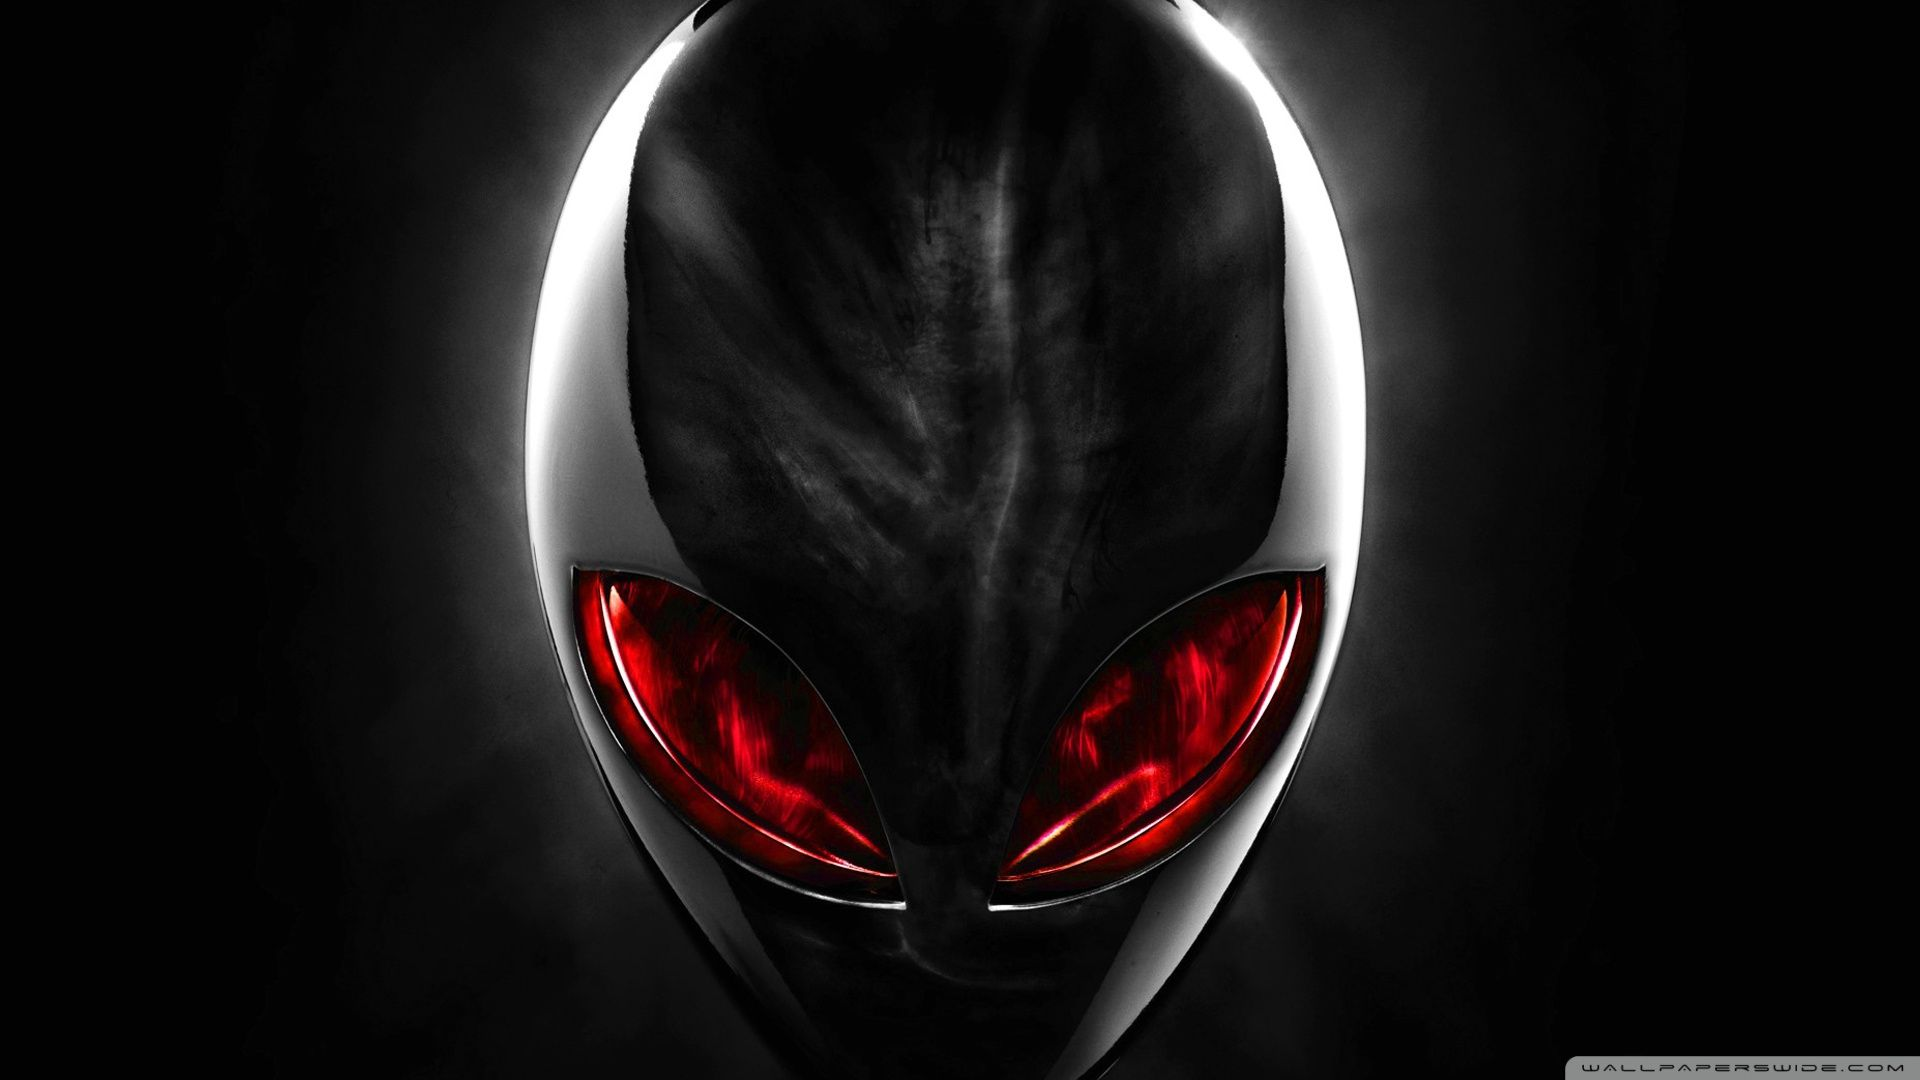 Alien Wallpapers Top Free Alien Backgrounds Wallpaperaccess